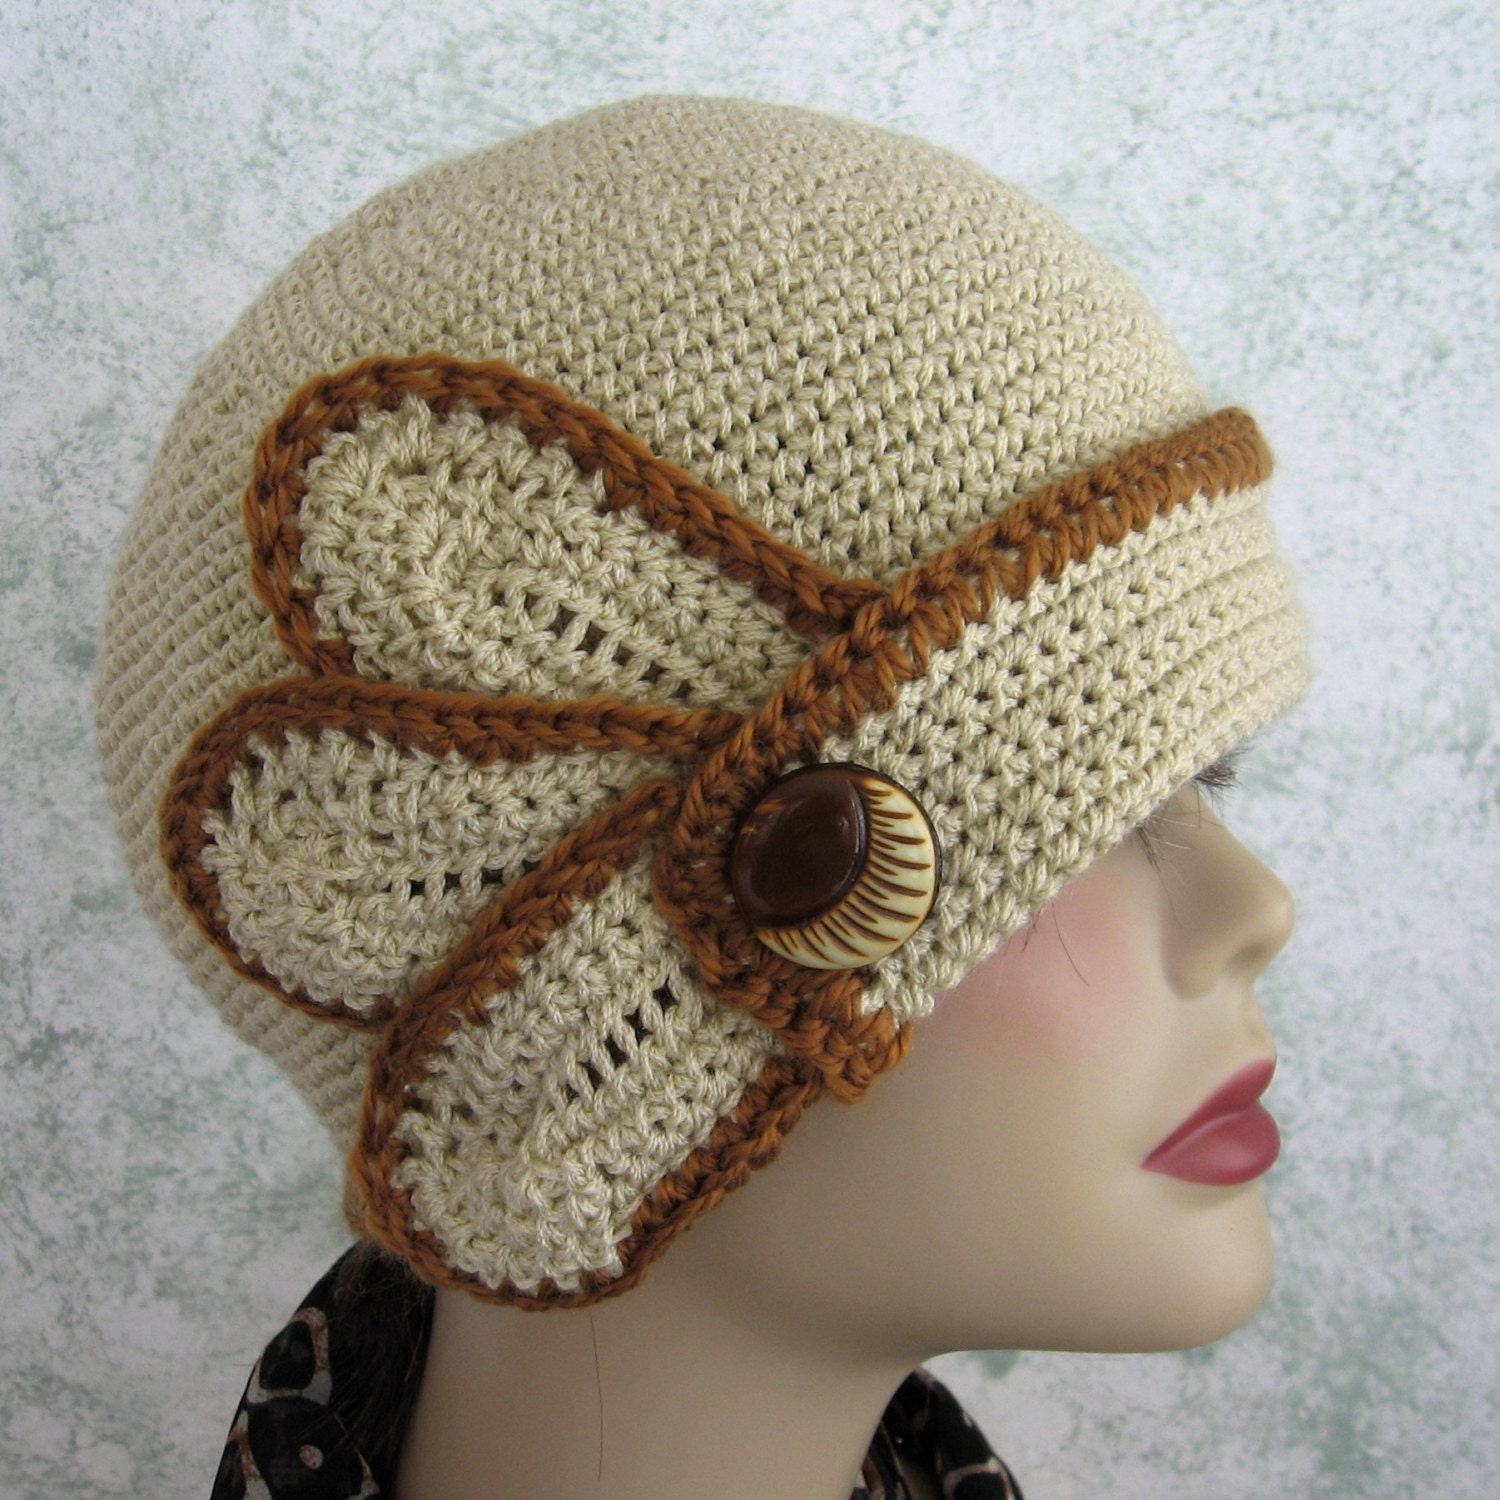 Excepcional Crochet Cloche Hat Patterns Free Modelo - Manta de Tejer ...